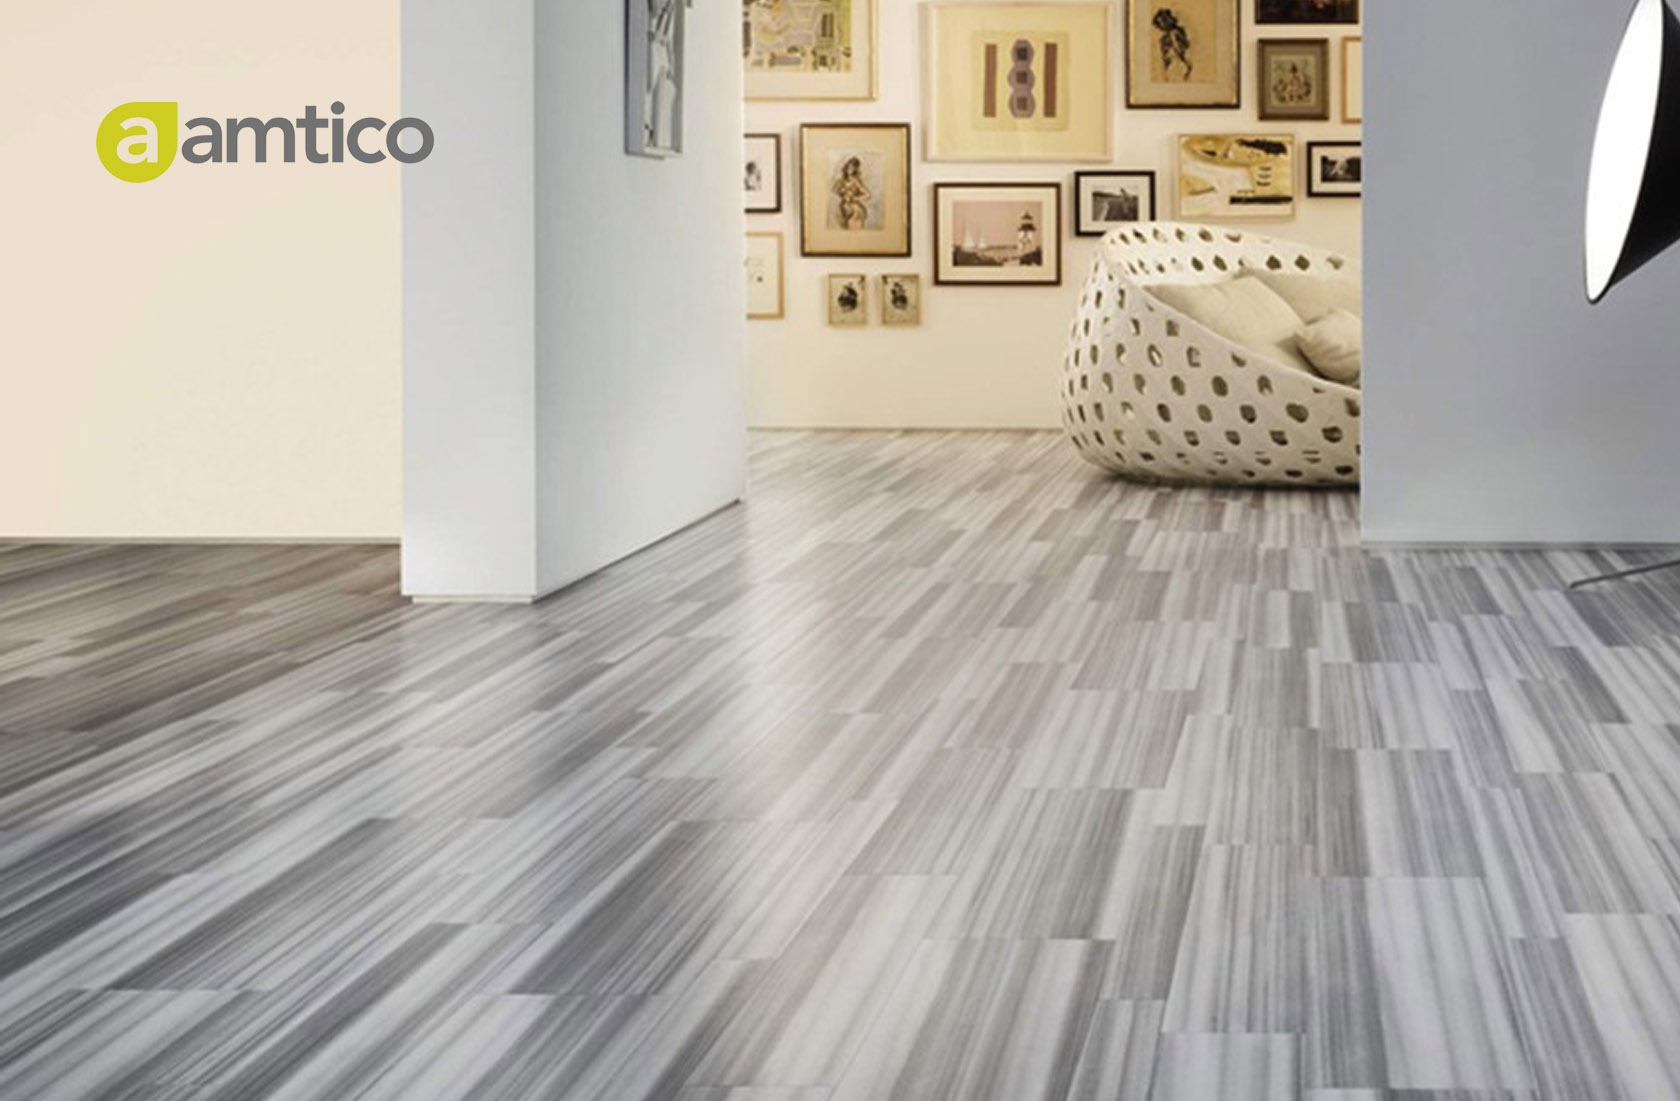 How To Clean Amtico Flooring All Floors Glasgow